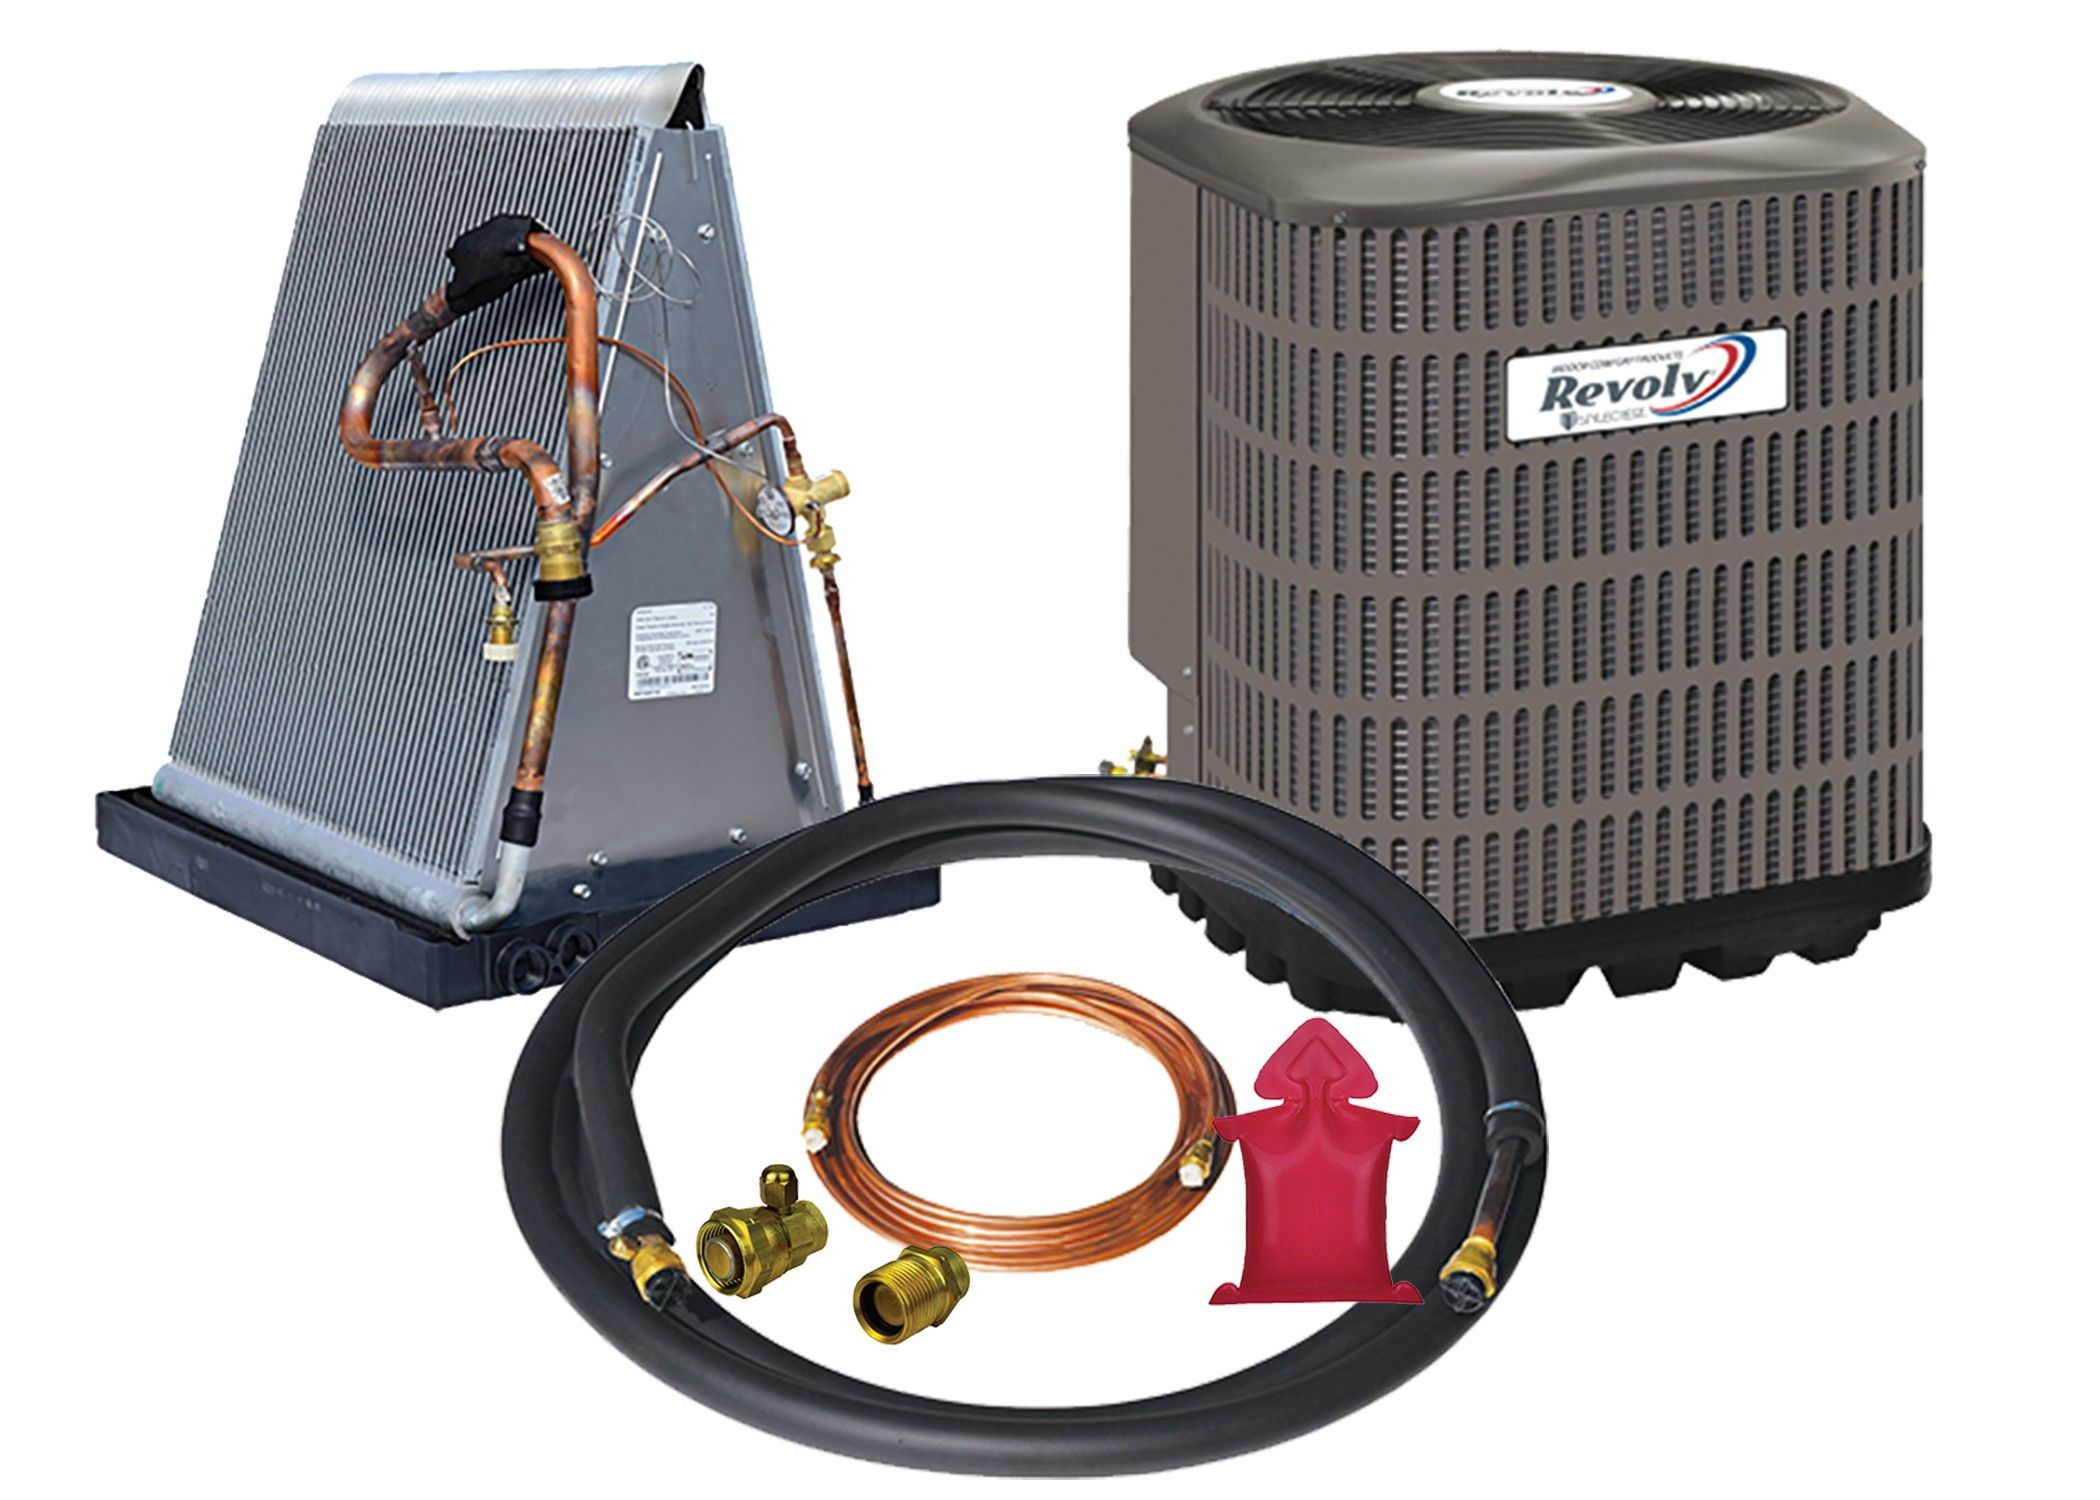 Revolv 4.0 Ton Heat Pump System Add On To Existing Furnace